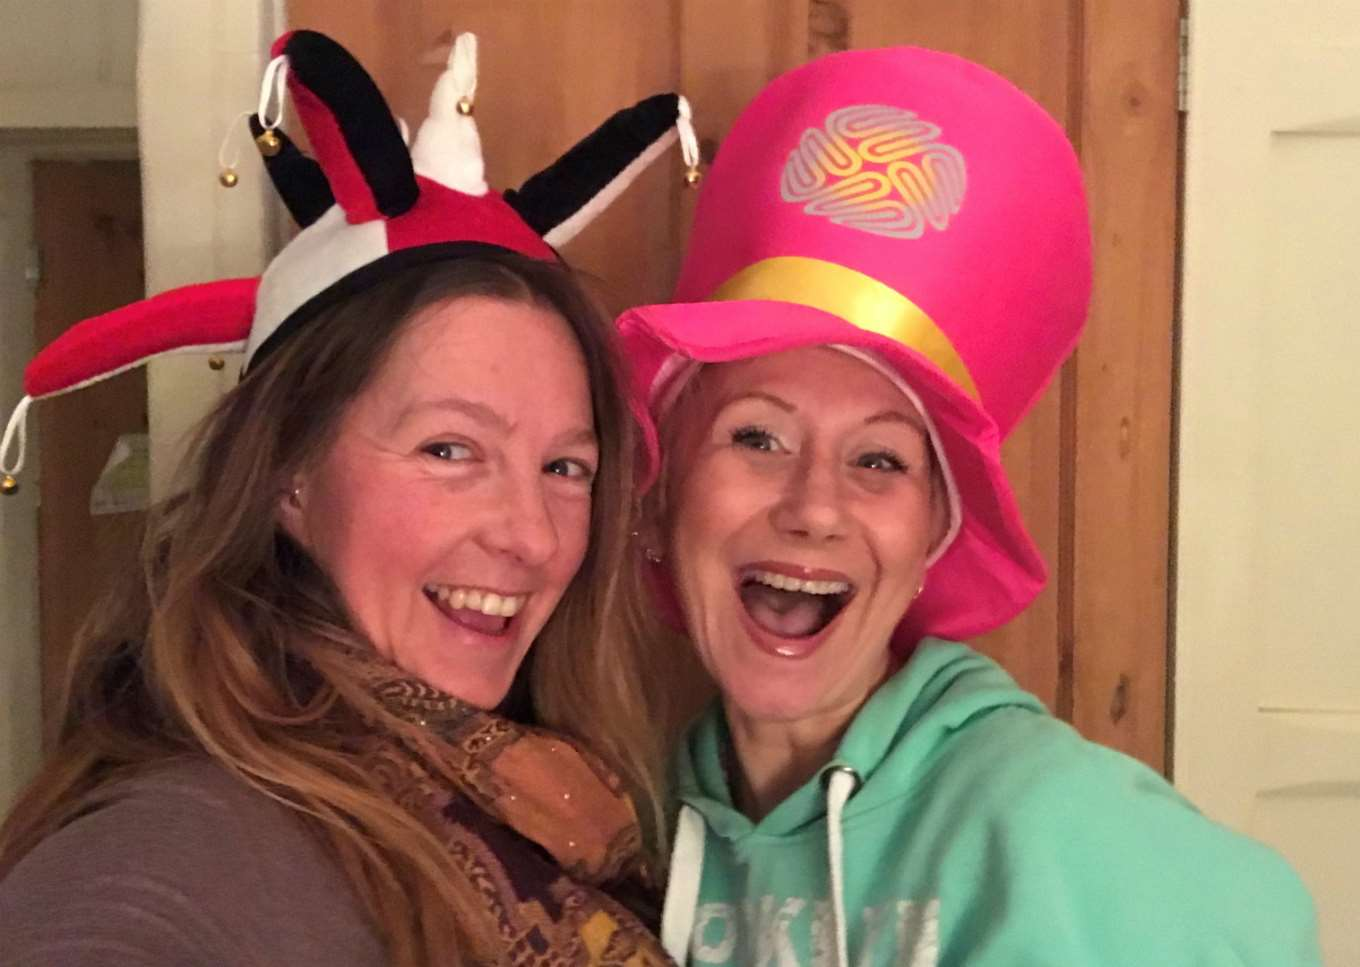 Michelle Spriddell (left) and Alicia Costello, who are organising a Wear A Hat fundraising event at The Full Moon, Morton